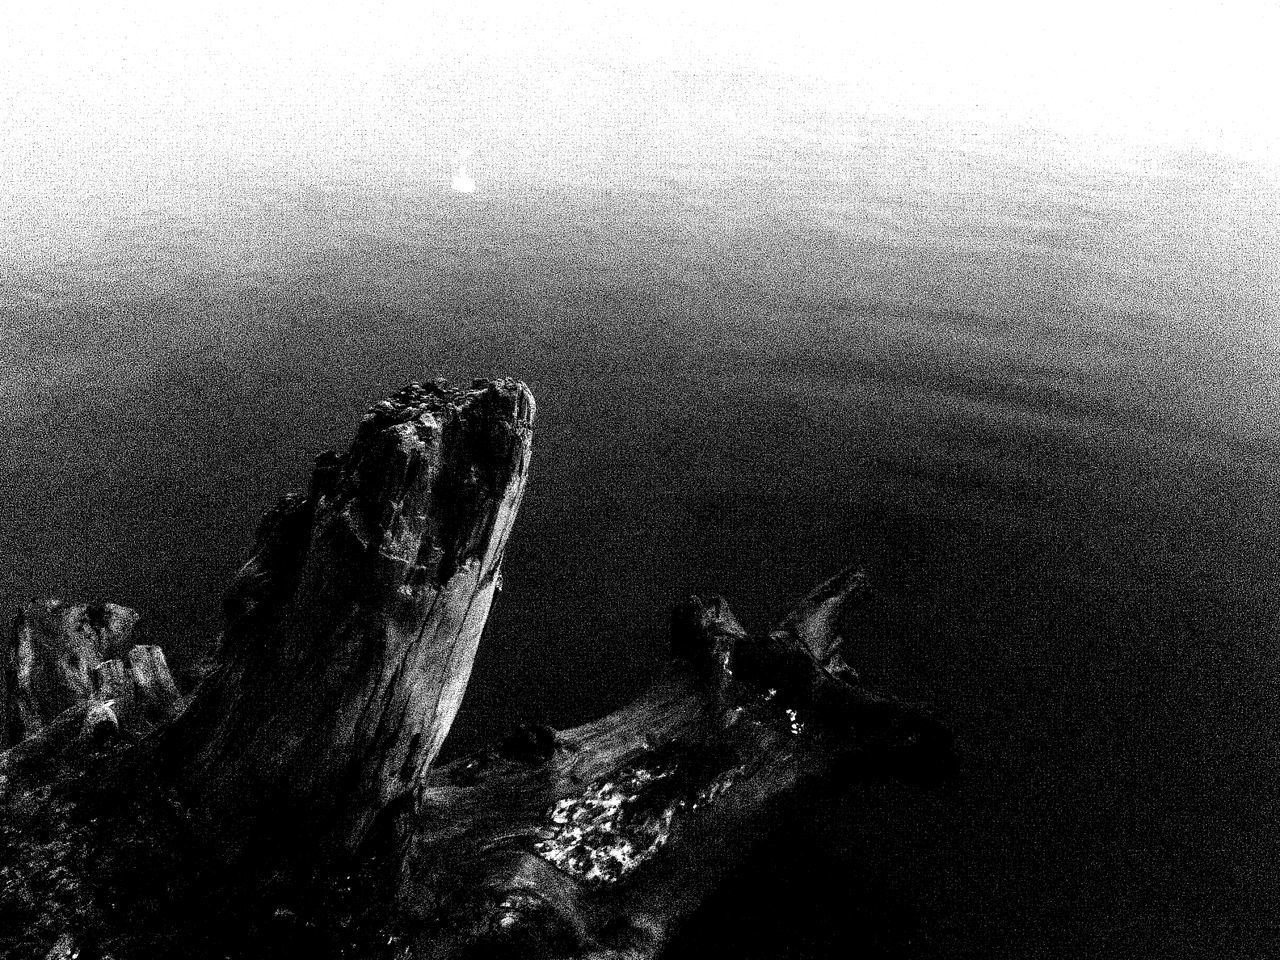 Snag Tree Ligth And Shadow Darkness And Light Black And White Textured  Black & White Blackandwhite Nature River Water